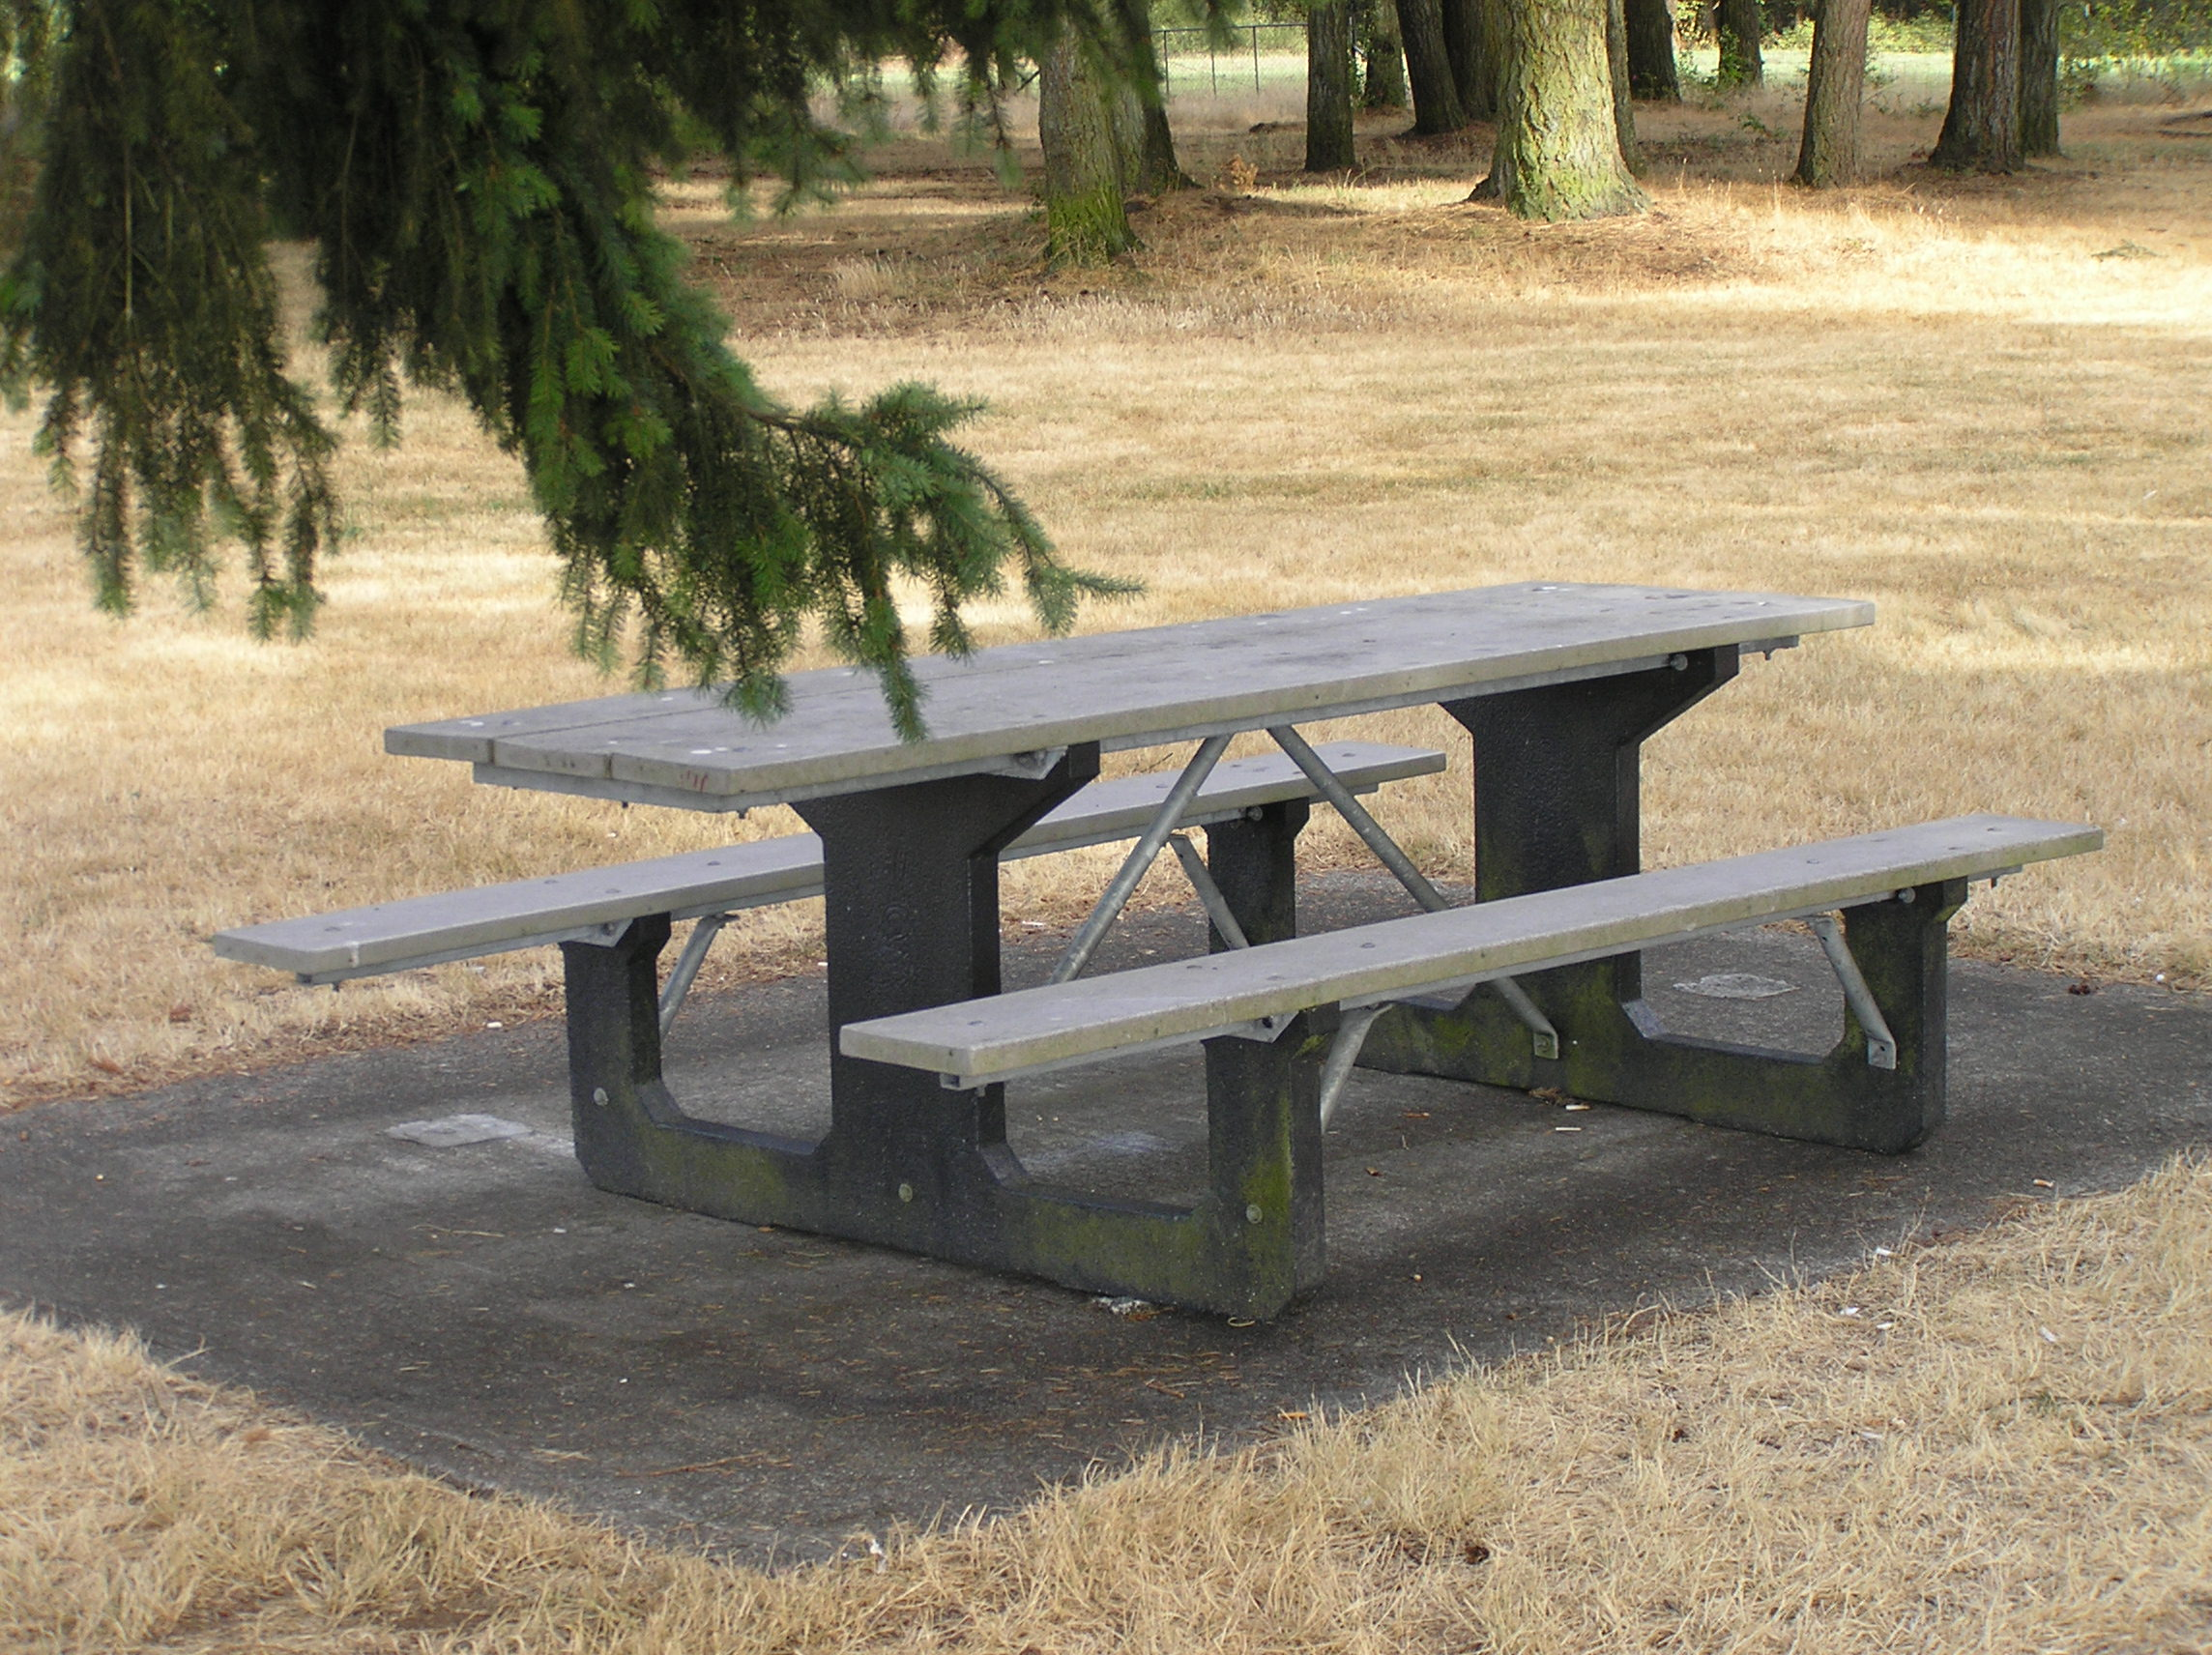 Picnic Table Park Bench Photo - Park bench and table